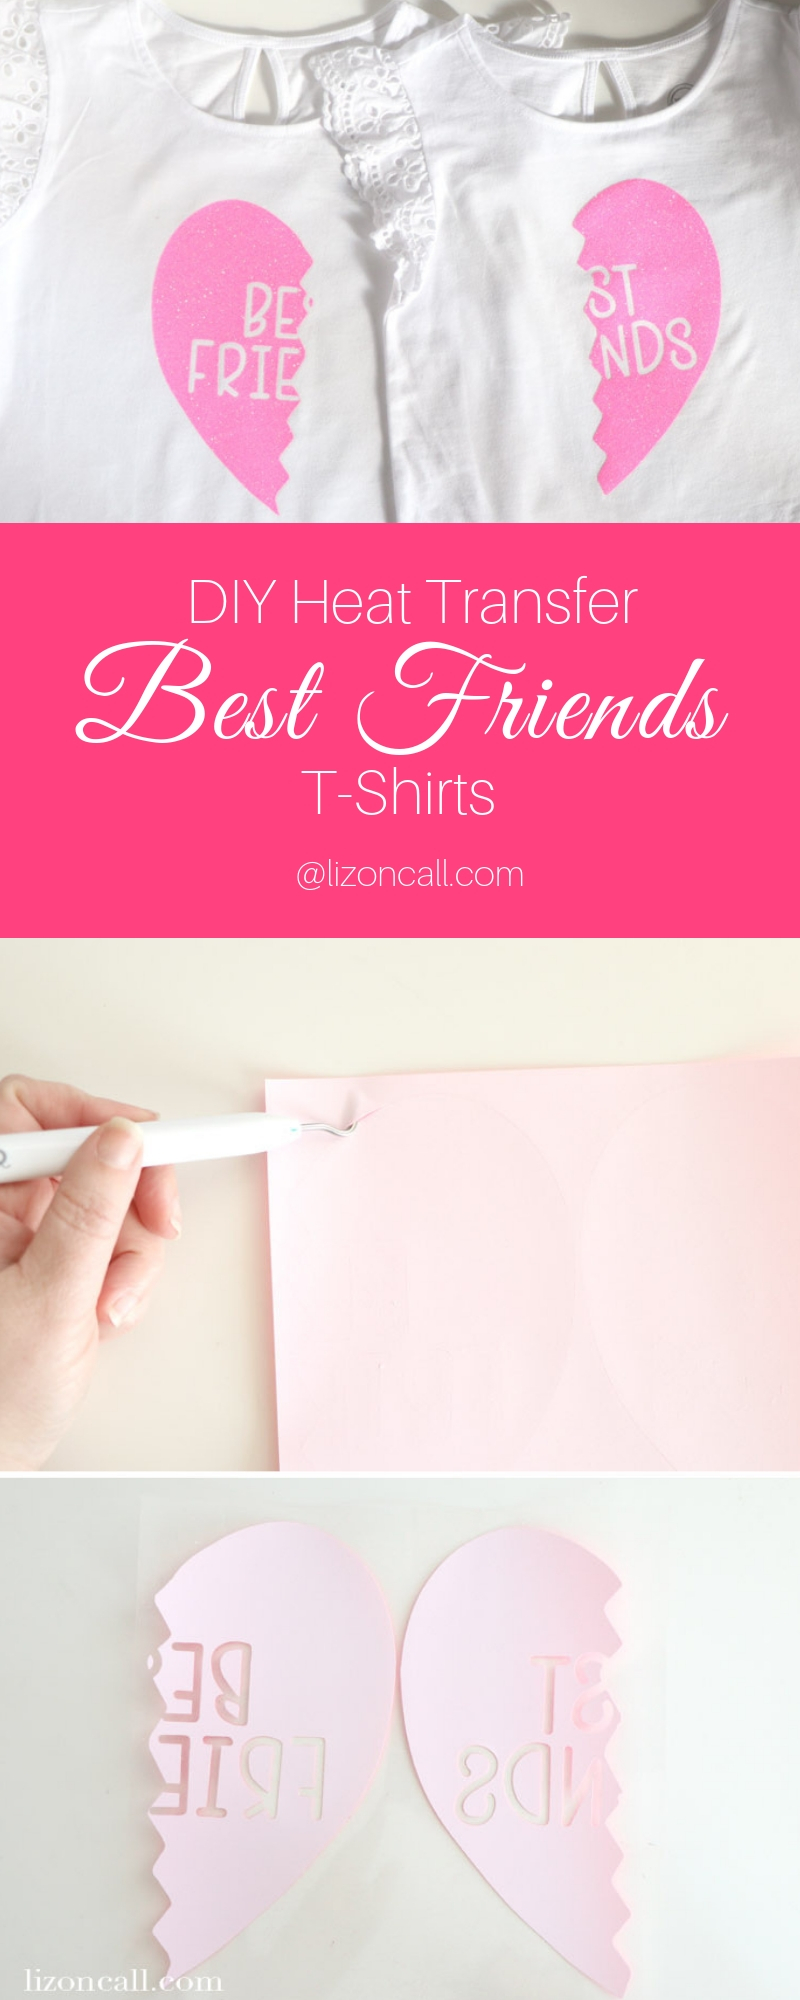 Make these DIY Best Friends Shirts for you and your bestie for a perfect Galantine's Day present. They are also super fun and cute for daughters or sisters.